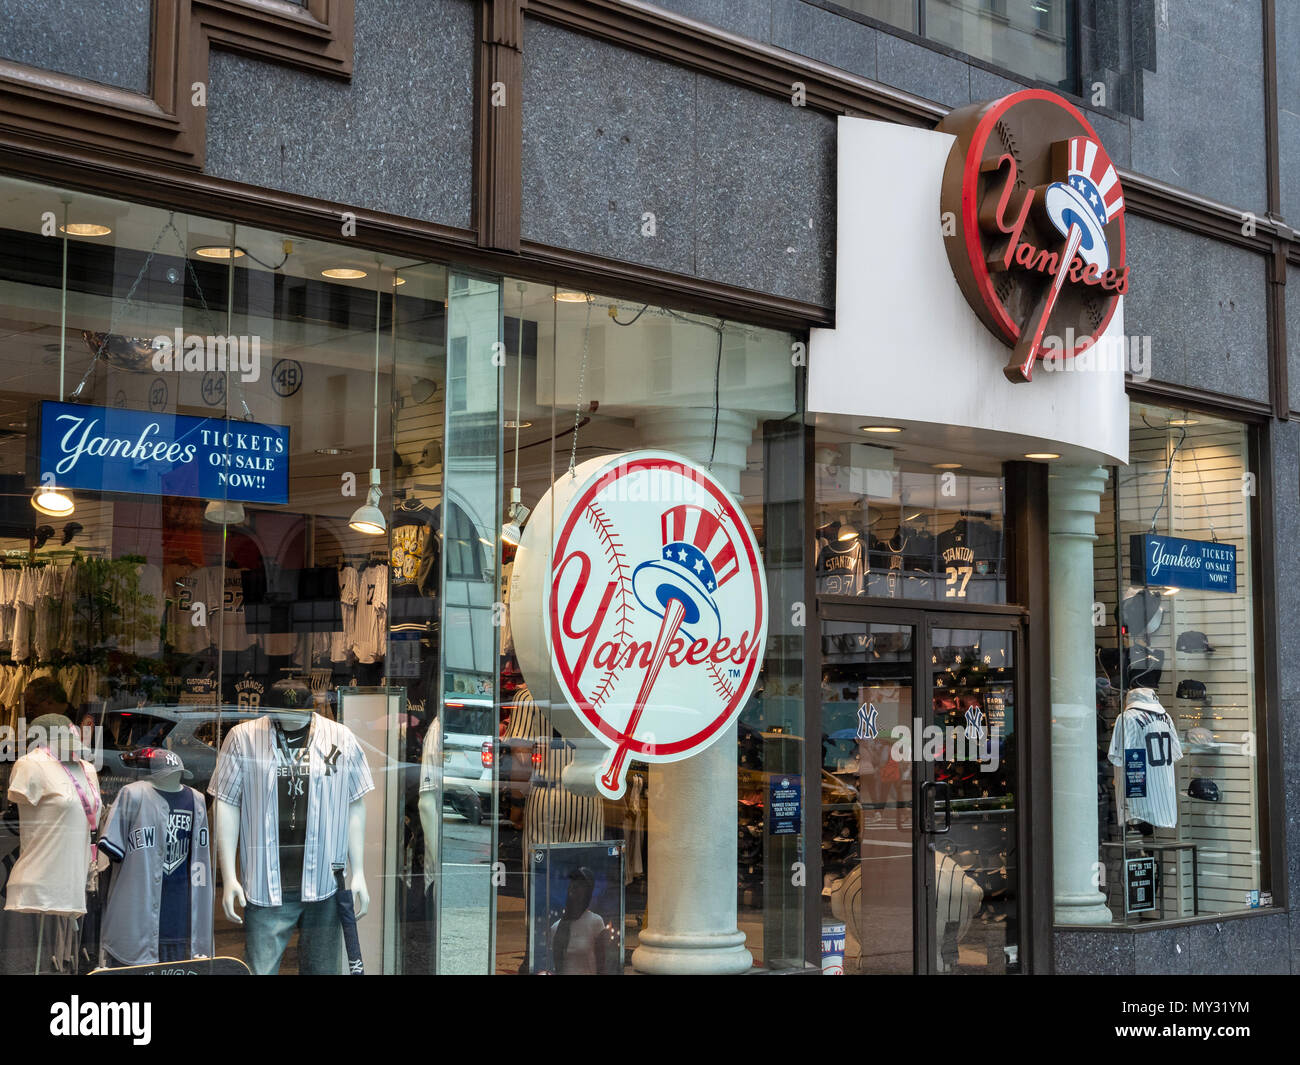 8da7b6ae82876 New York Yankees Team Store Imágenes De Stock   New York Yankees ...